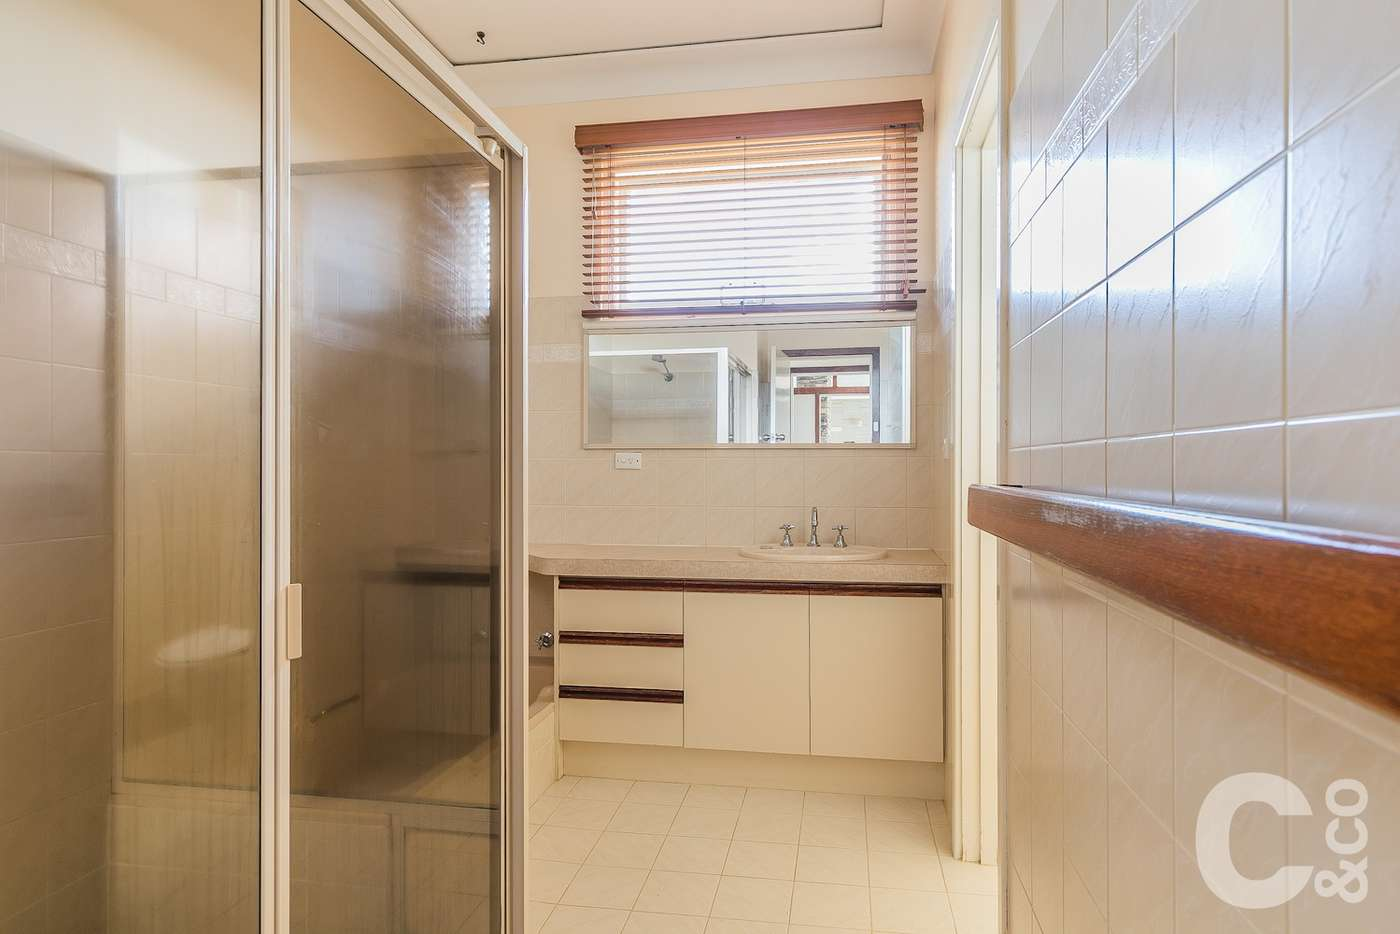 Sixth view of Homely house listing, 1/22 Brookes Way, Calista WA 6167